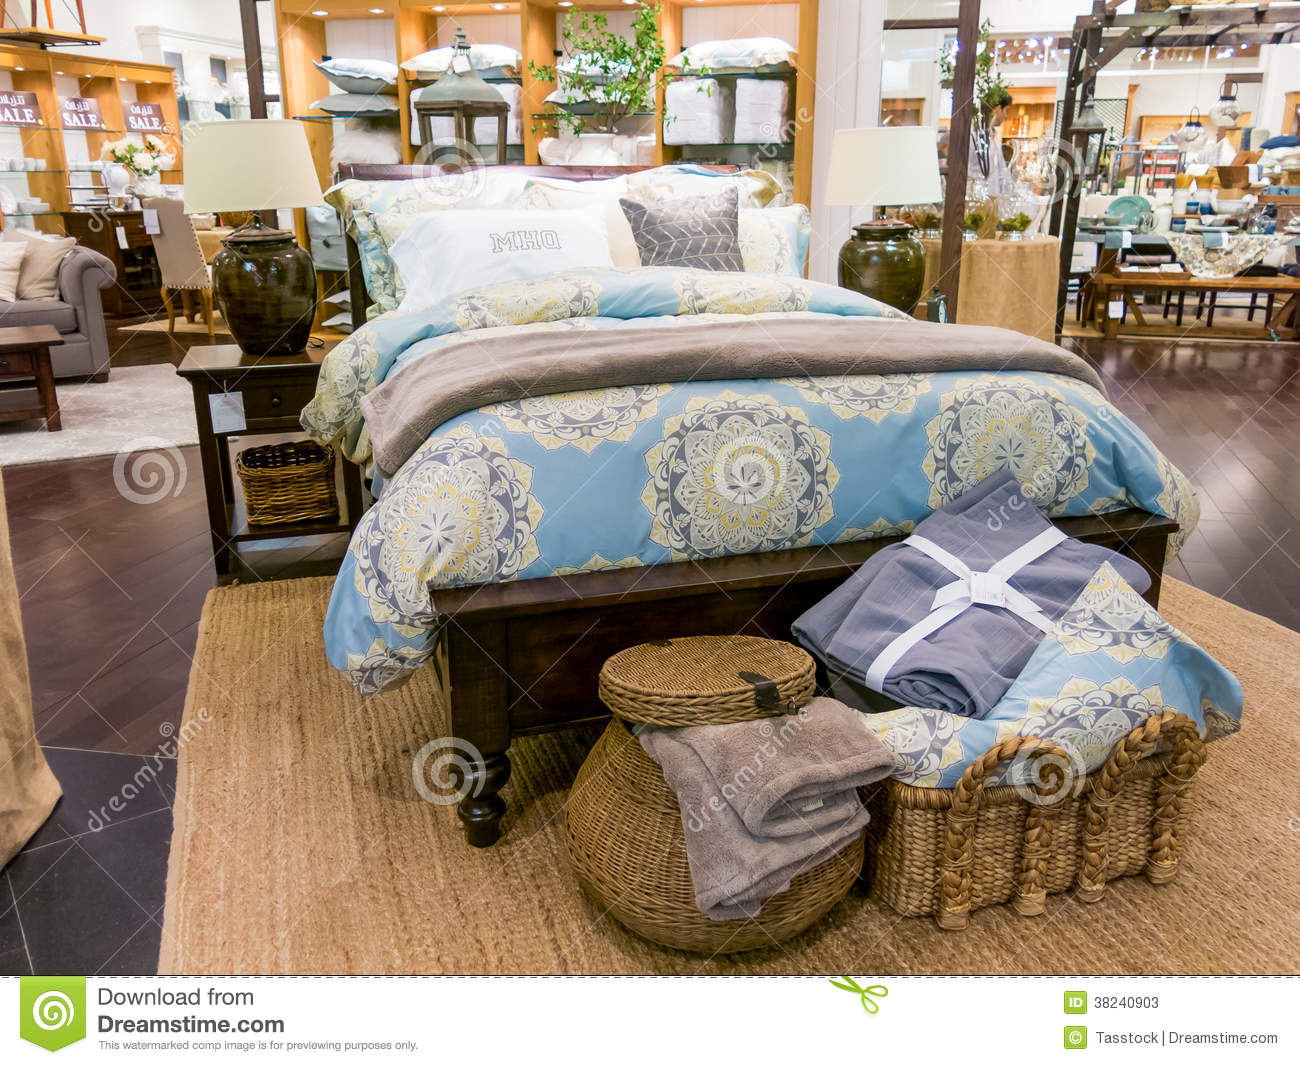 Home decor store in dubai mall editorial stock photo for Home decor retailers